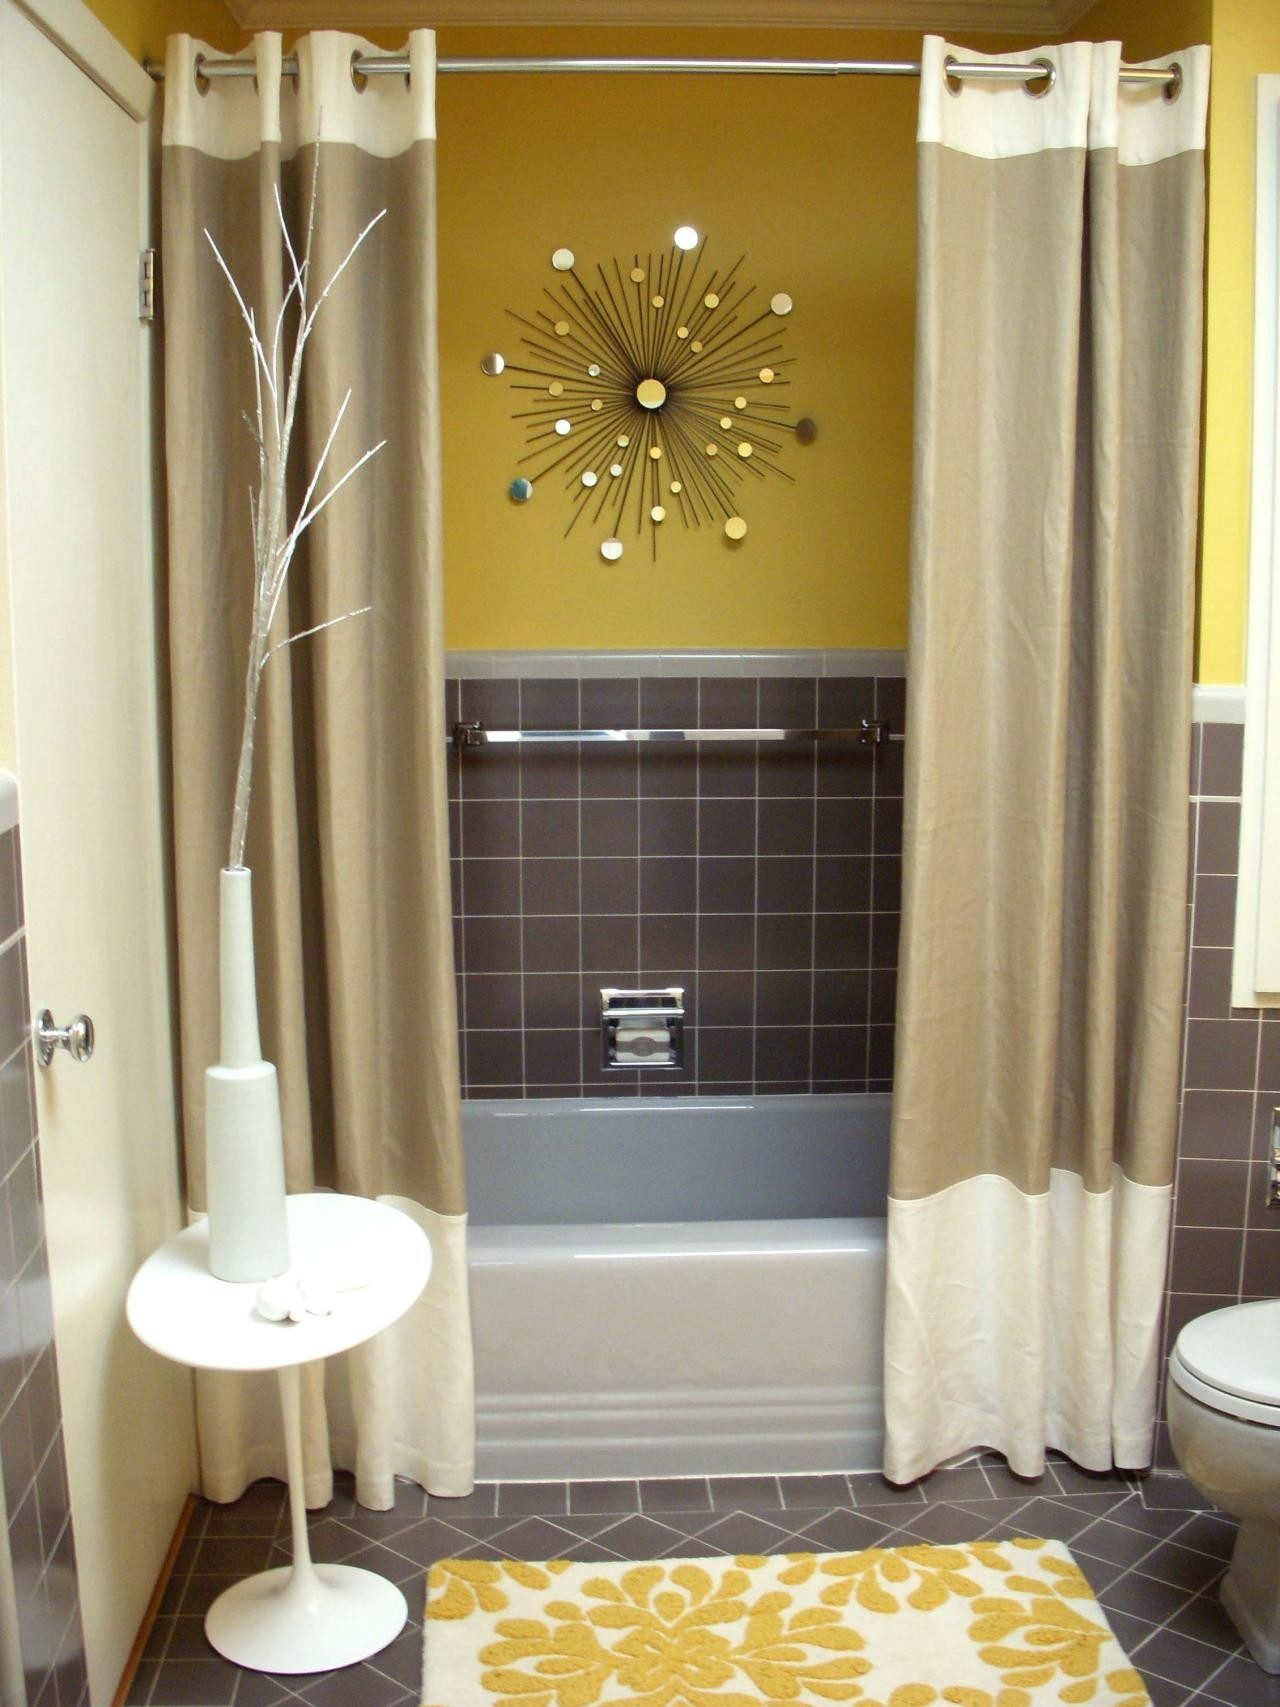 Superieur Where To Buy Extra Long Shower Curtain